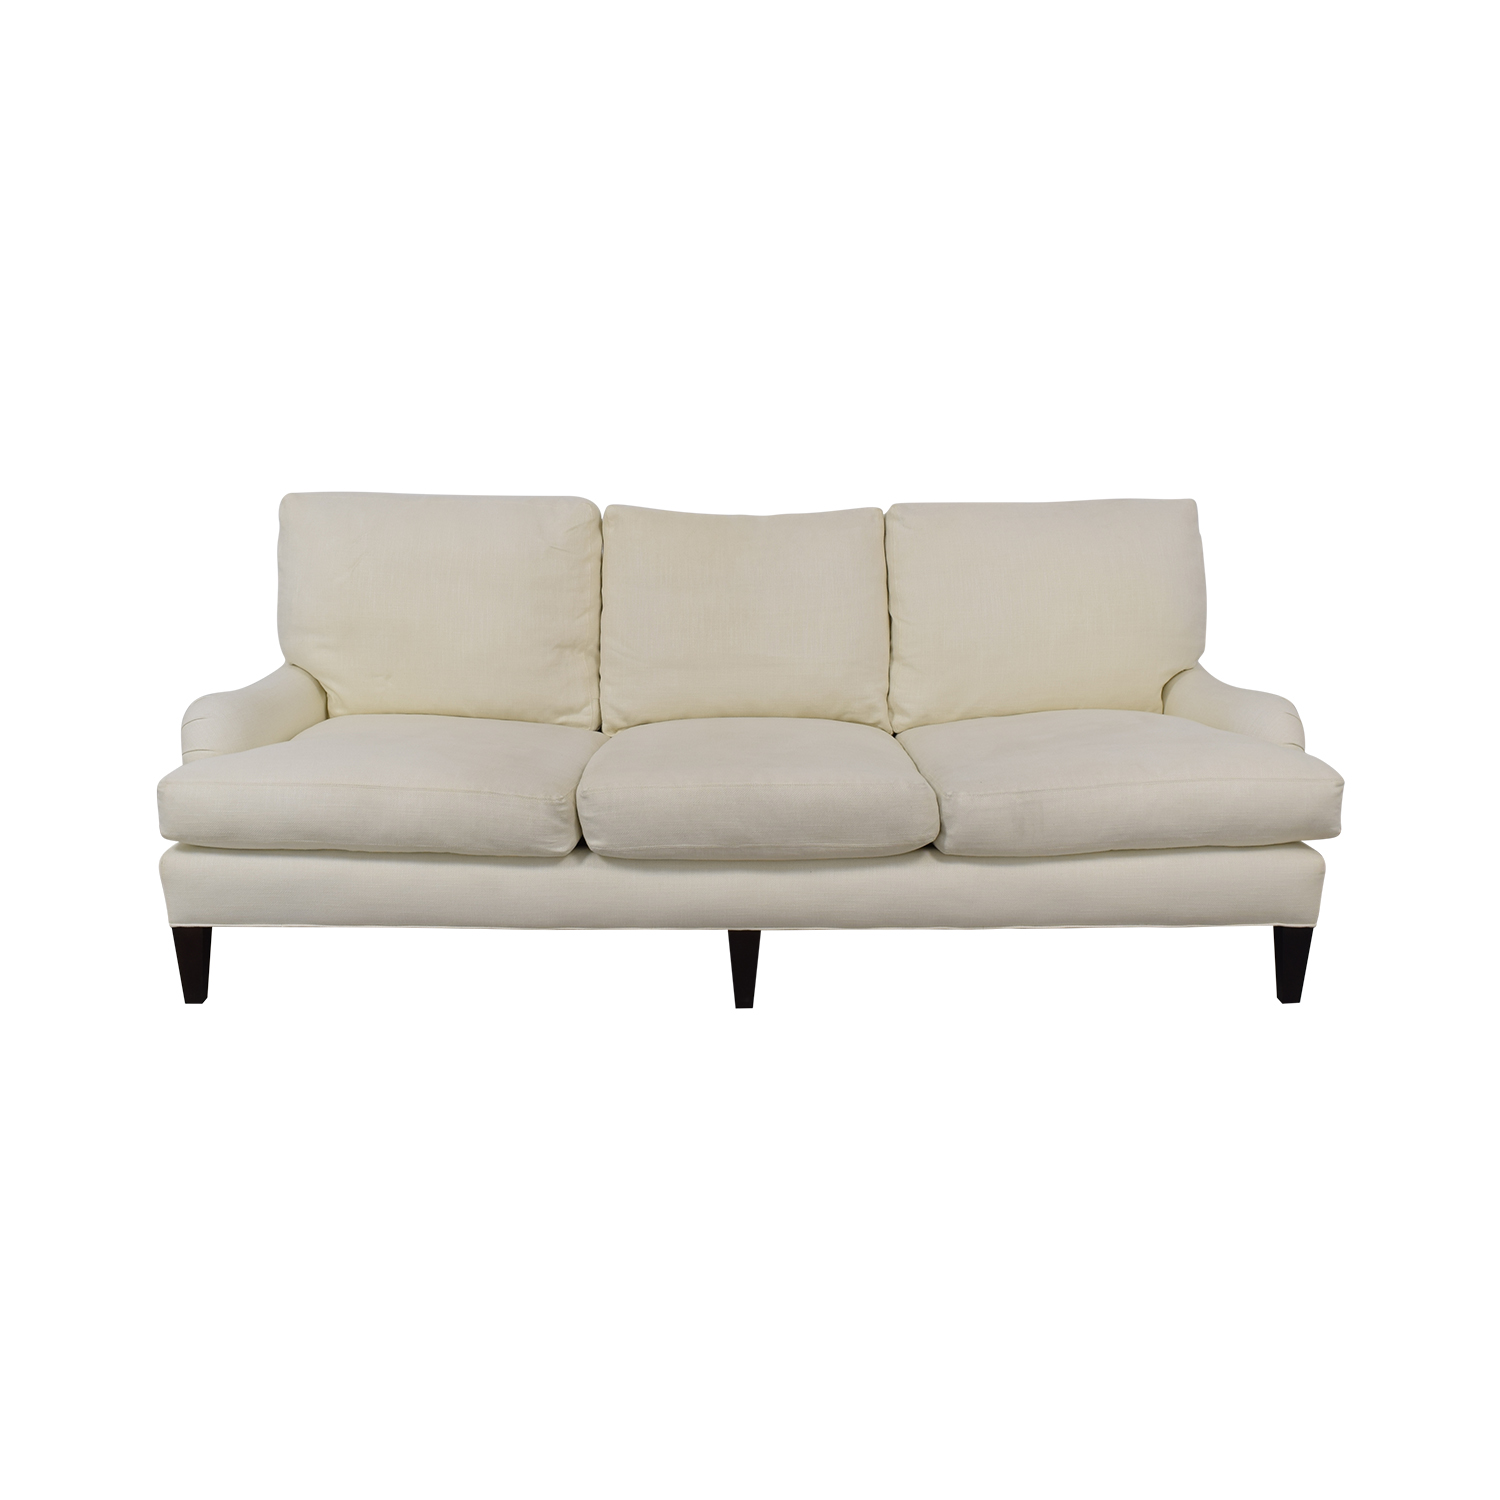 Lee Industries Lee Industries Custom Three Seater Sofa Sofas